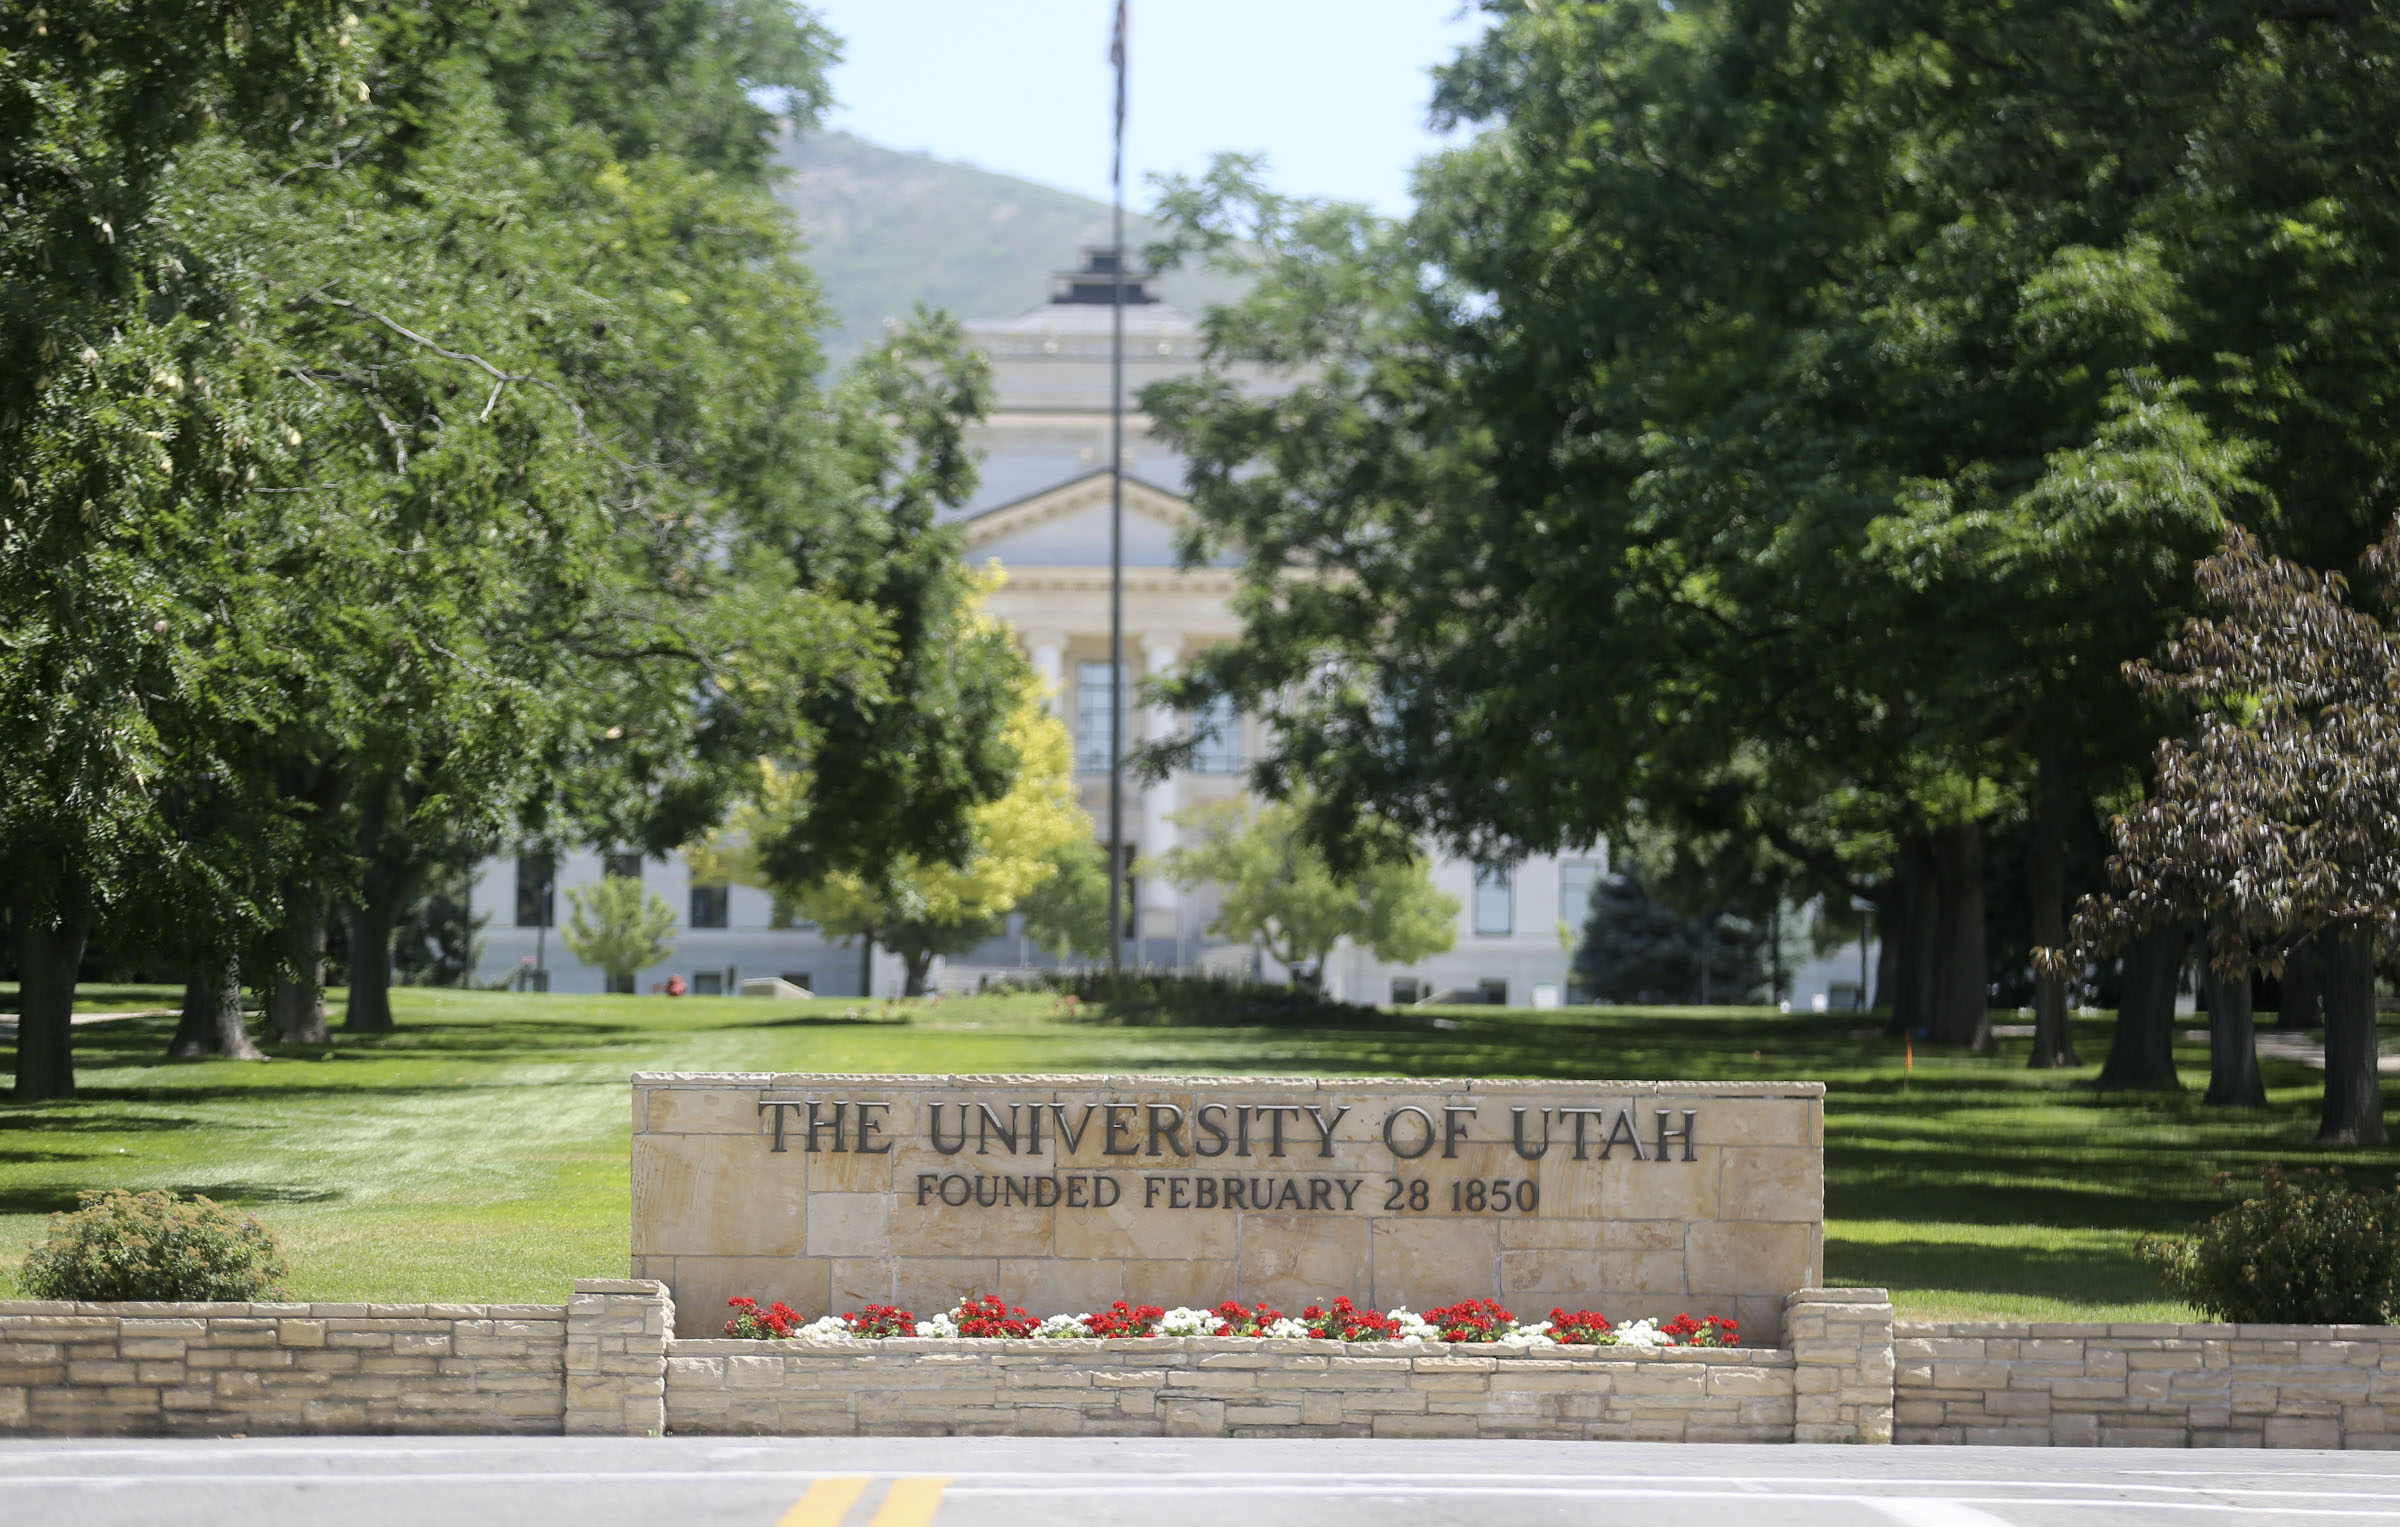 The University of Utah in Salt Lake City is pictured on Tuesday, July 28, 2020.